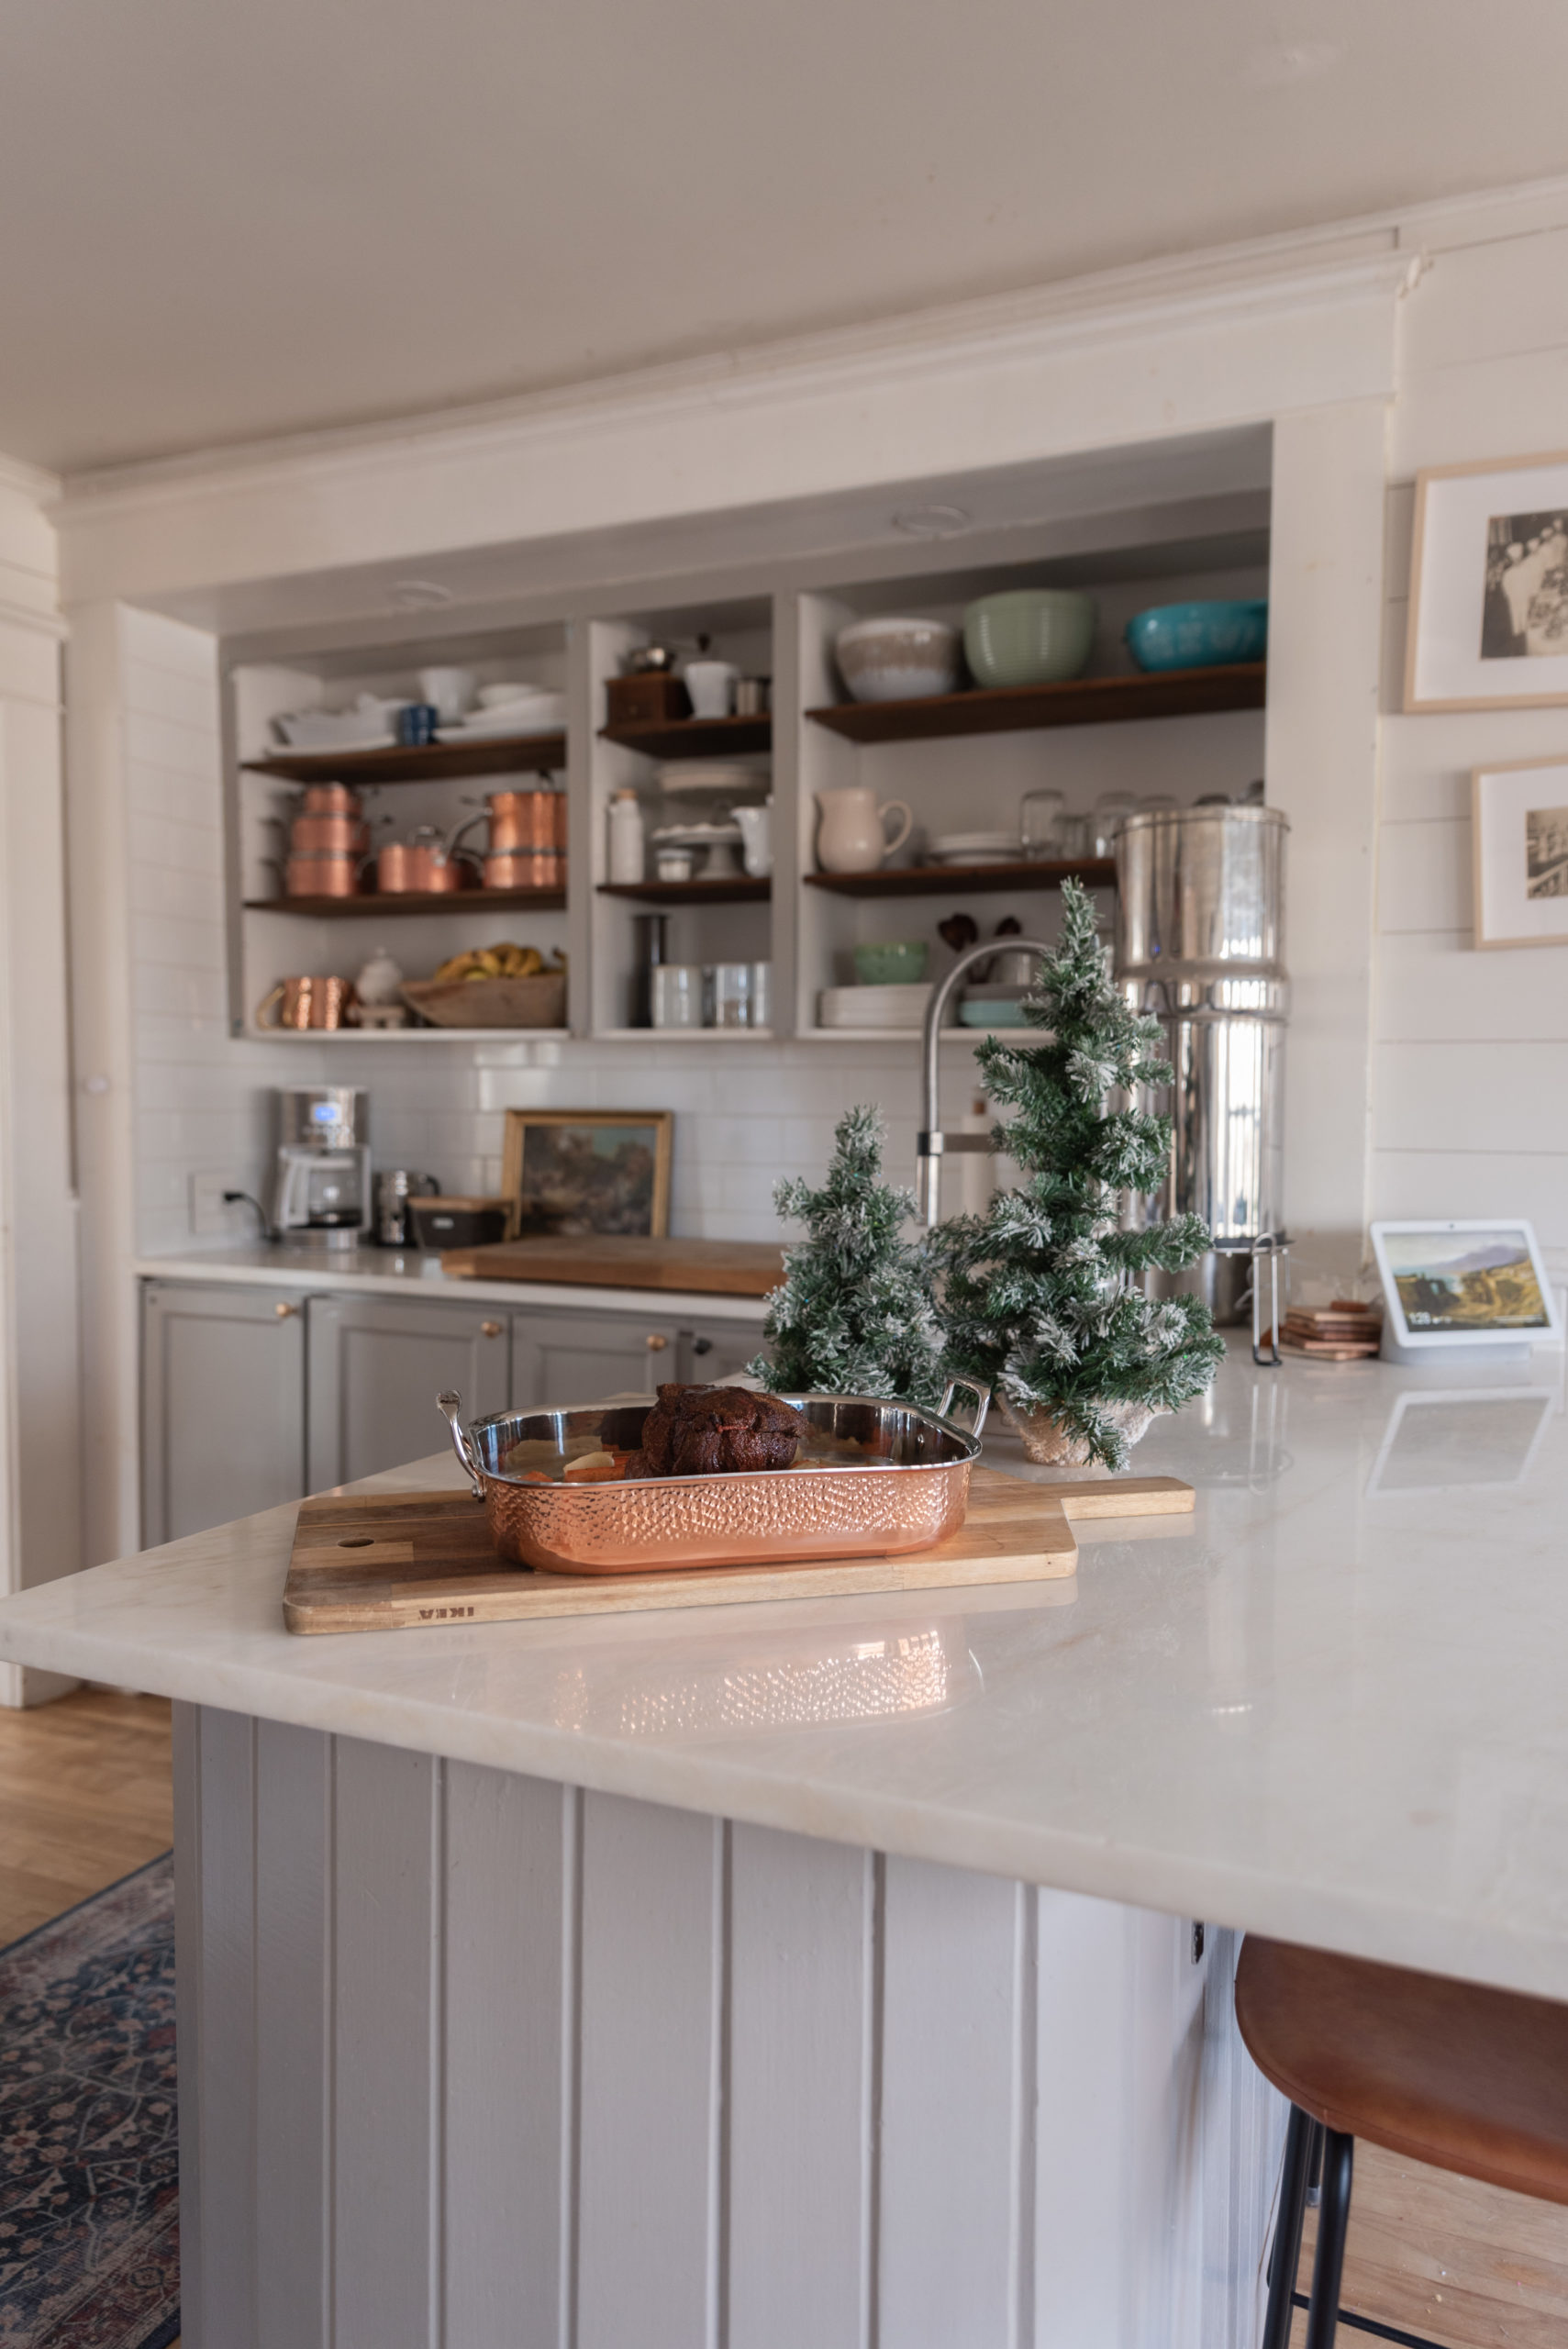 The Wild Decoelis | Holiday Home Tour | Gray kitchen with open shelving, Christmas decorations and white marble countertops